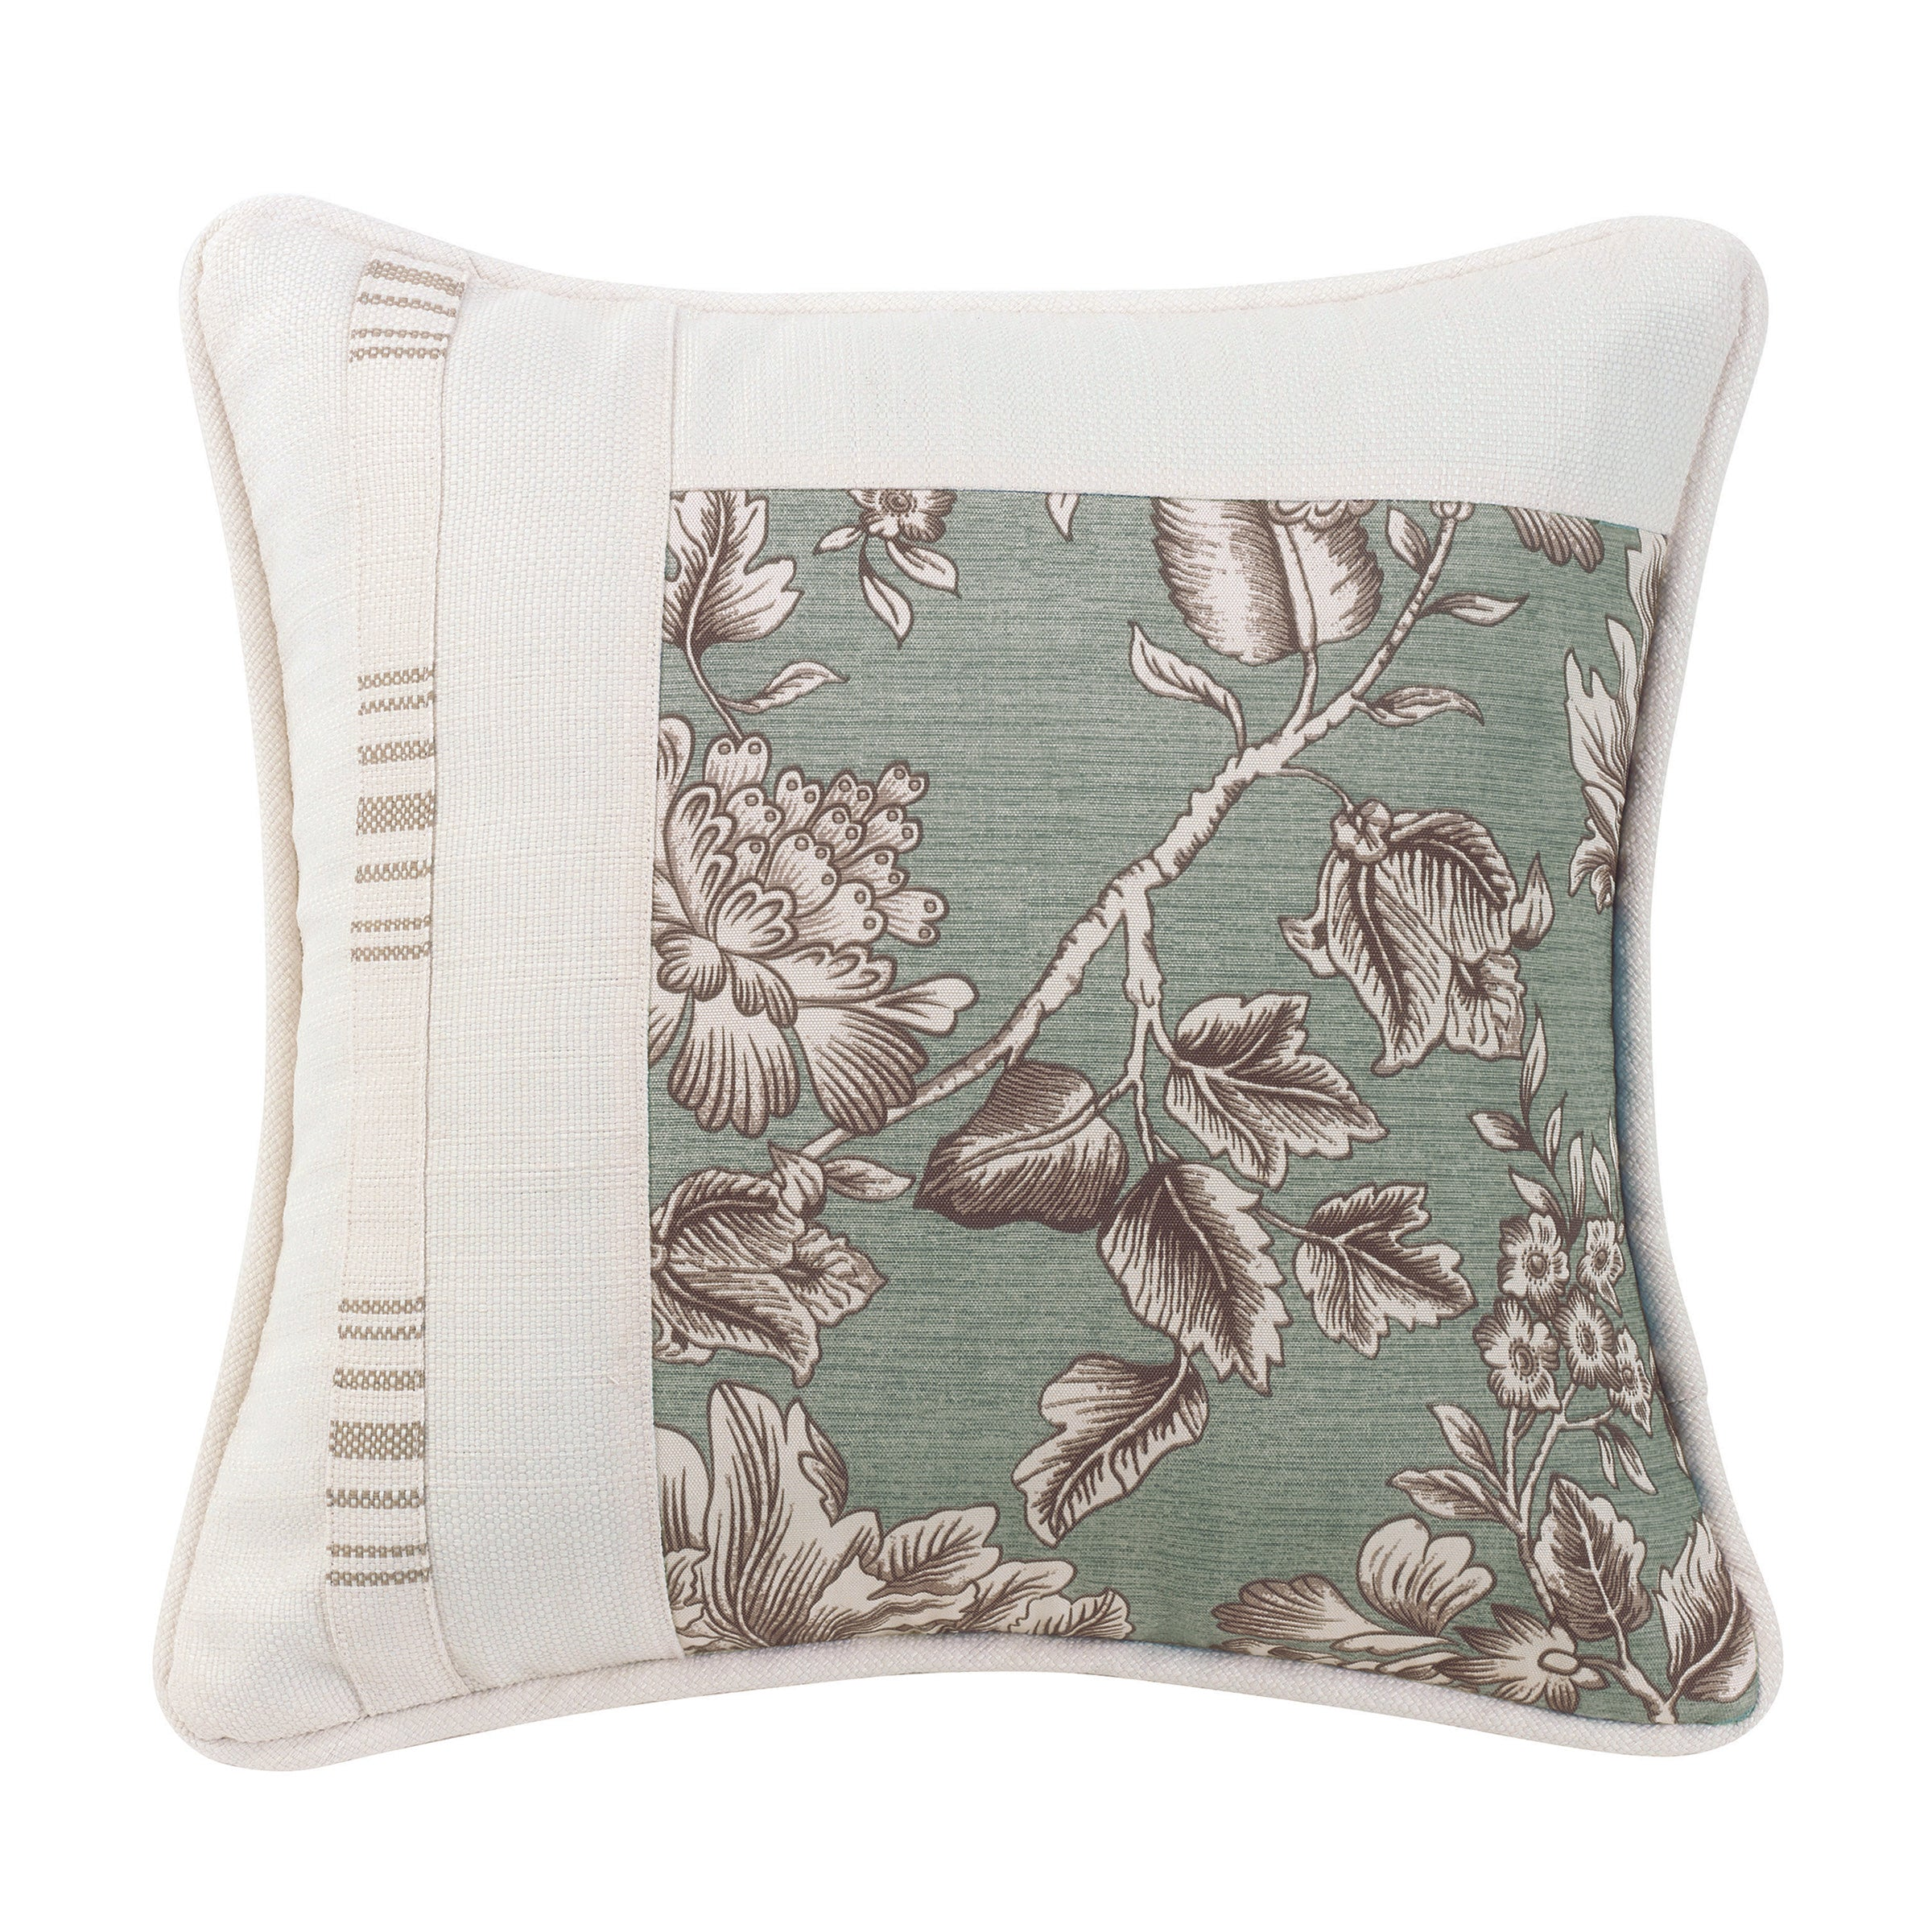 FB4160P1  Gramercy Square Pillow